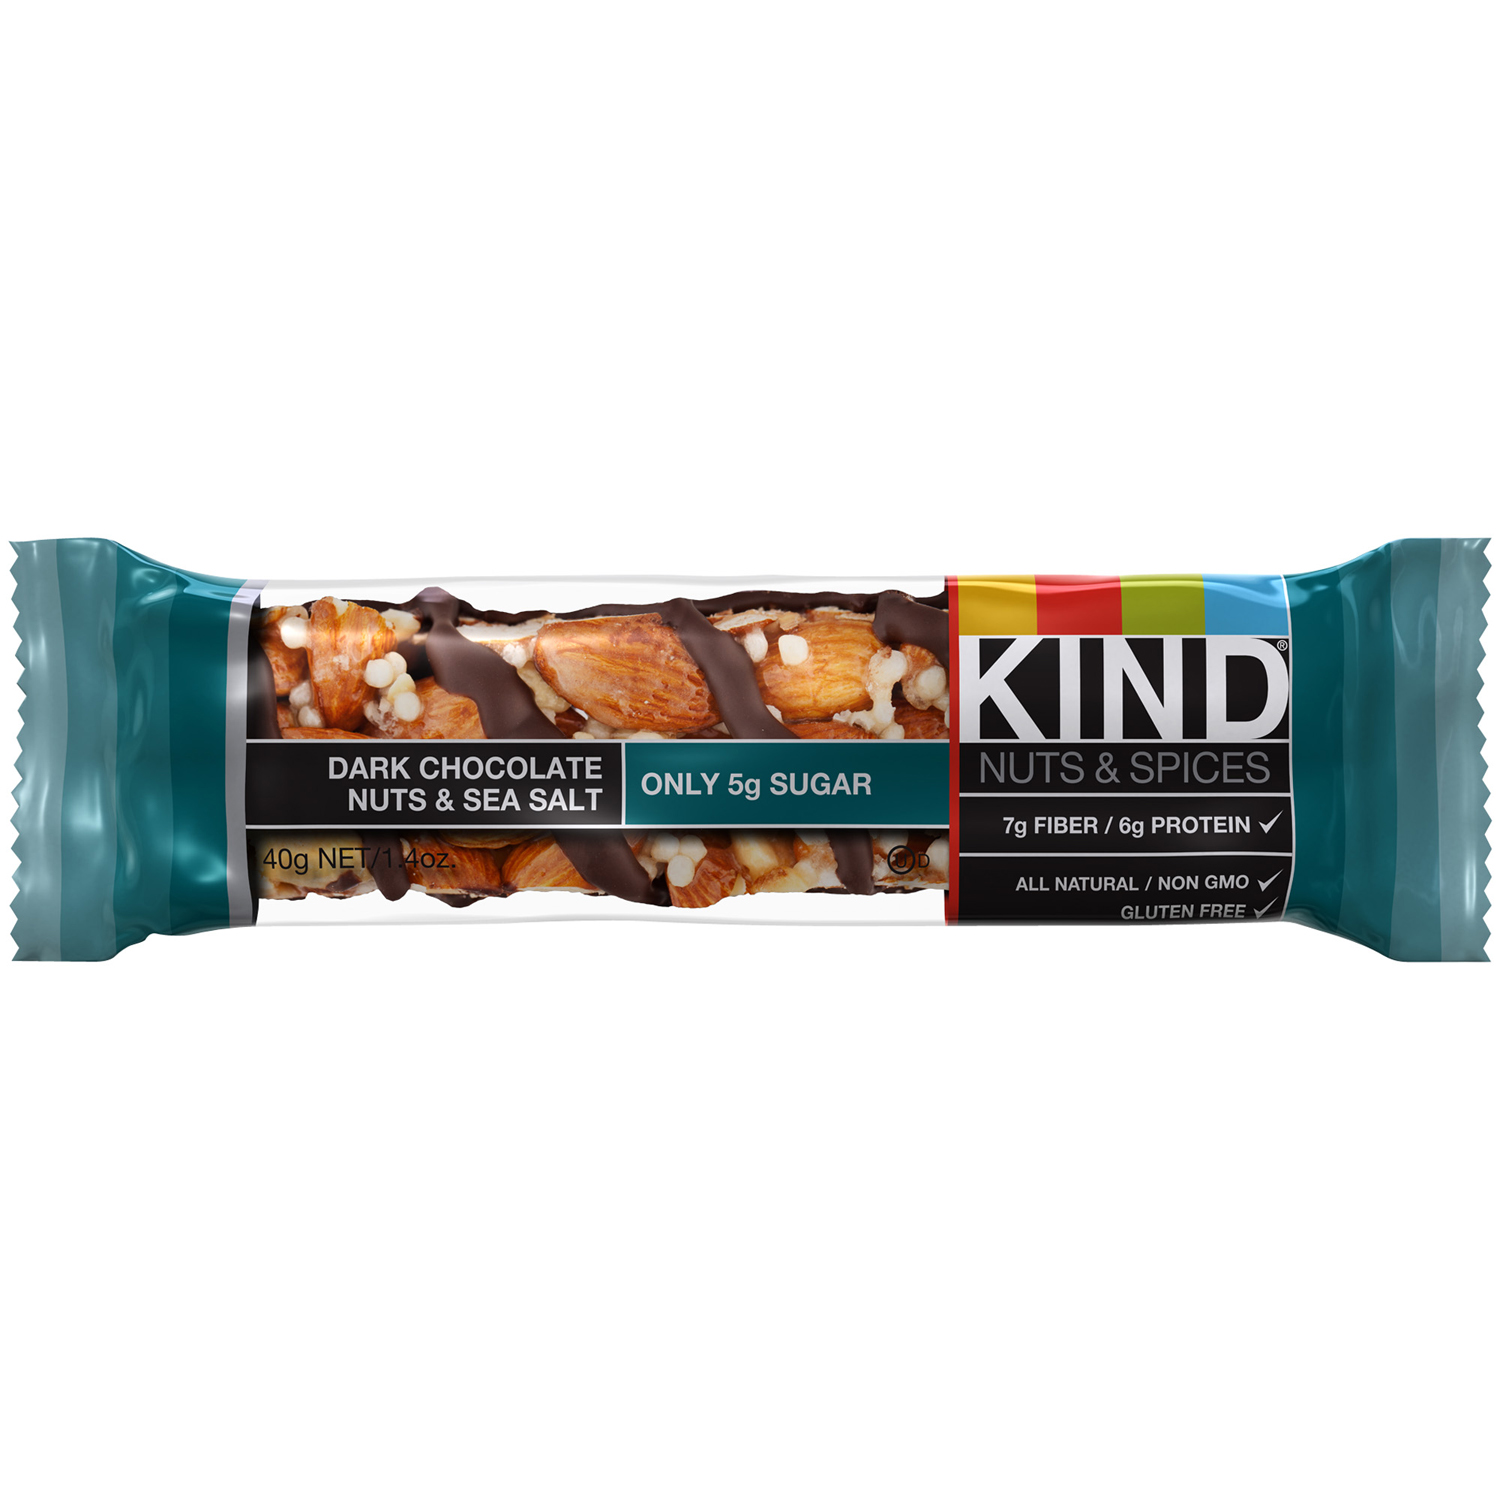 Kind Nuts amp Spices Dark Chocolate Nuts amp Sea Salt Bar 14